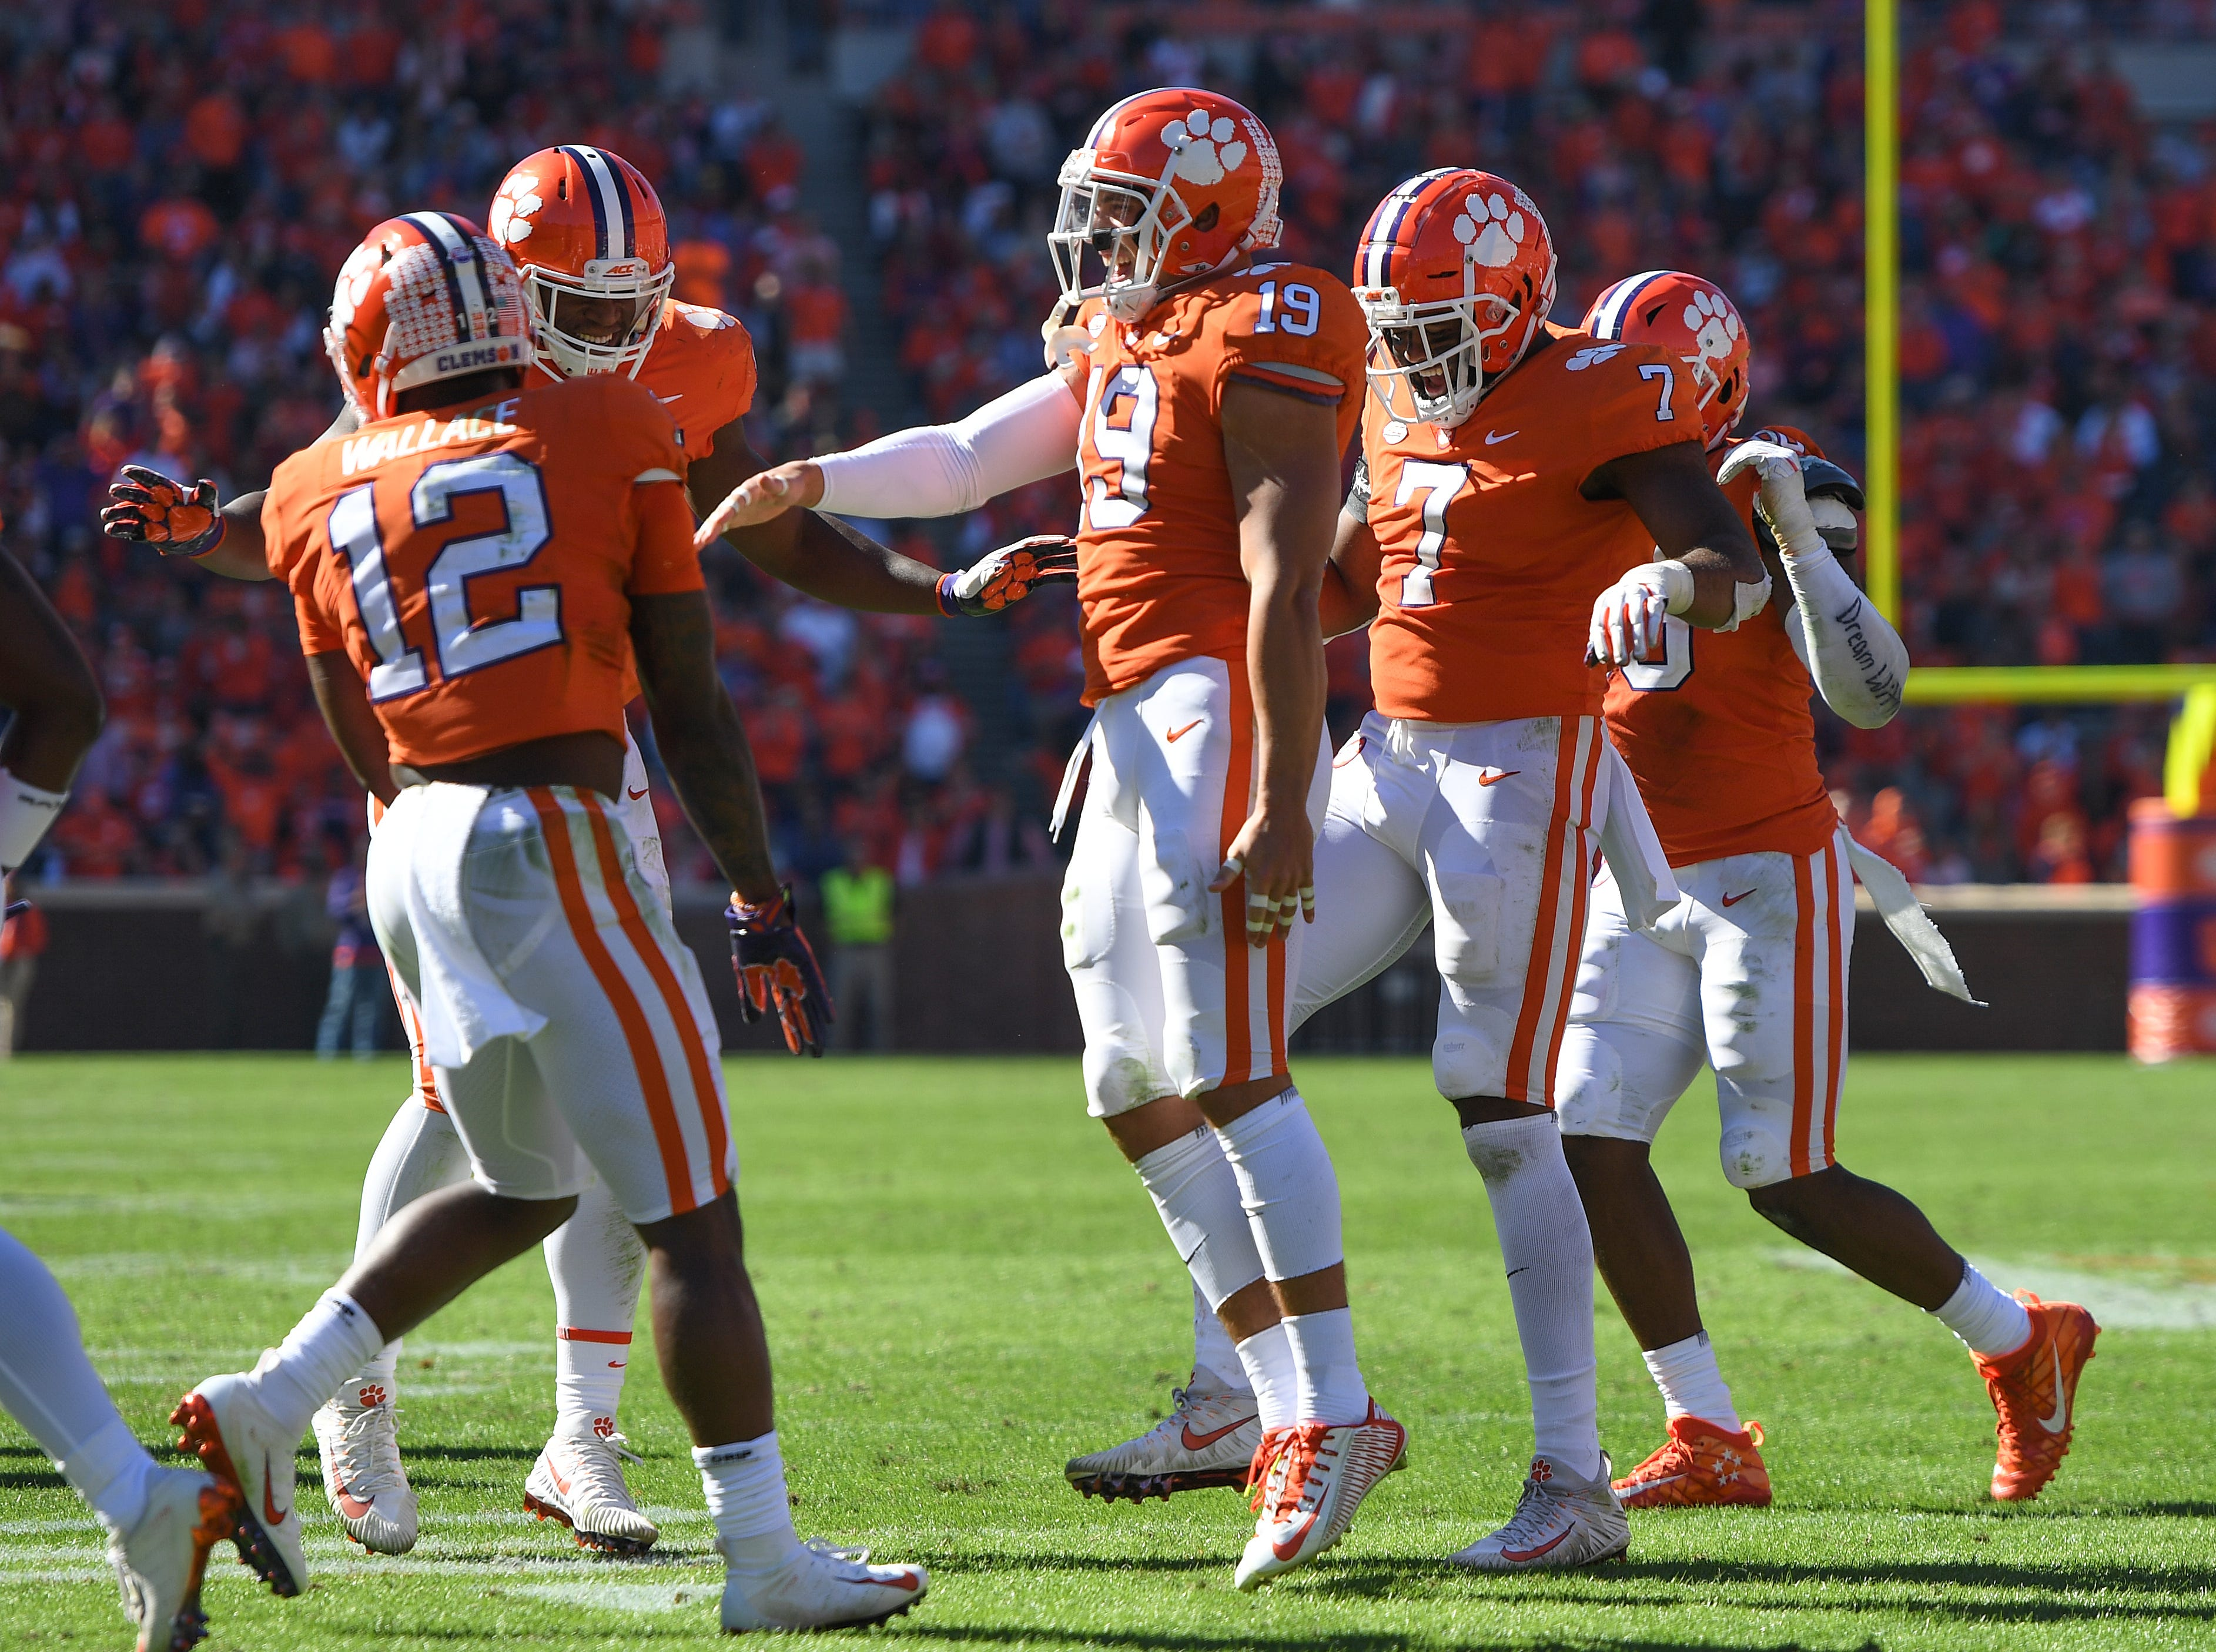 Clemson defensive back Tanner Muse (19) celebrates after intercepting a Louisville pass during the 3rd quarter Saturday, November 3, 2018 at Clemson's Memorial Stadium.